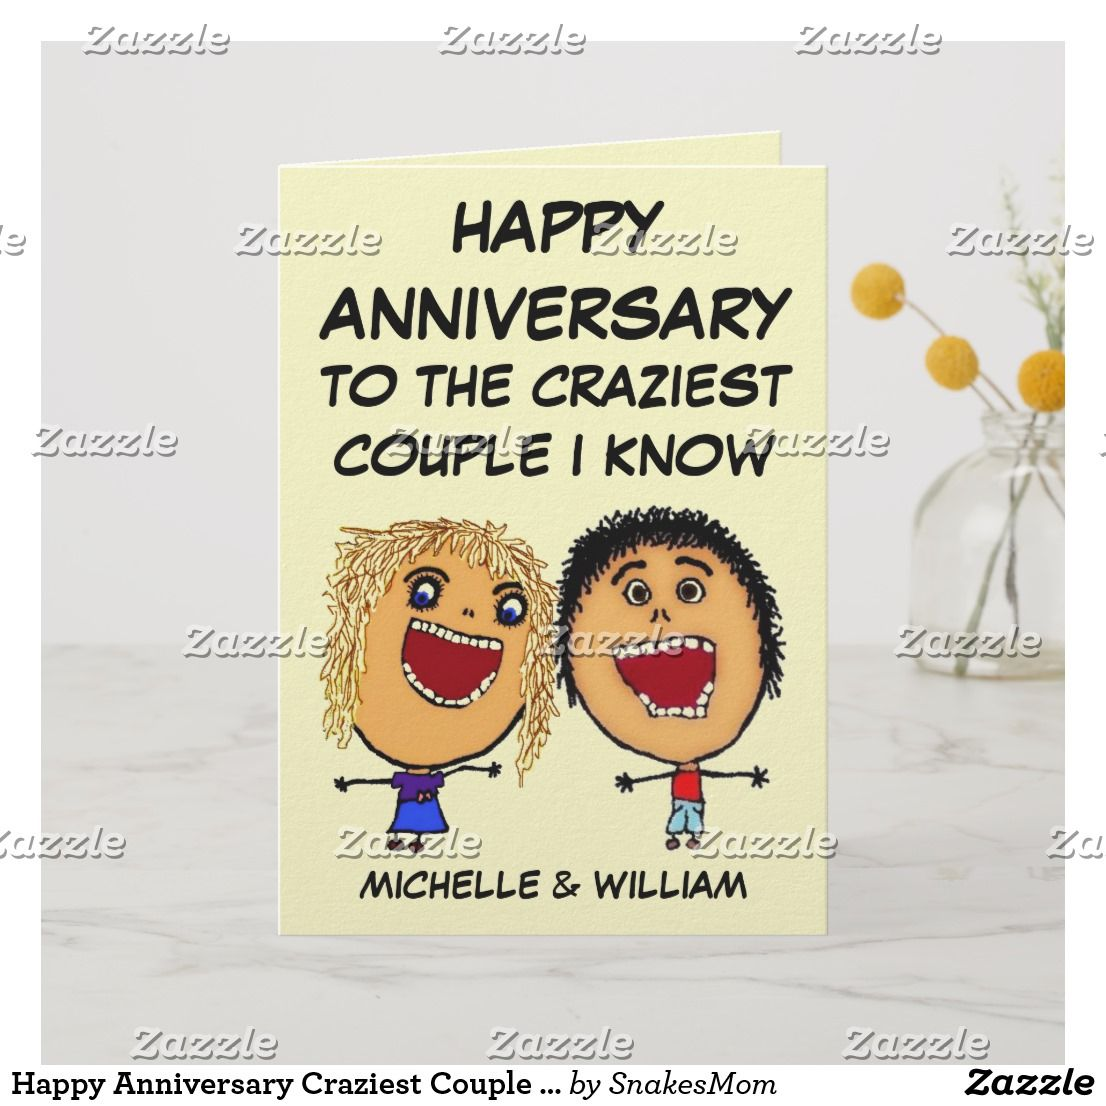 Happy Anniversary Craziest Couple I Know Card Zazzle Com Anniversary Cards For Husband Anniversary Cards For Him Personalized Anniversary Cards